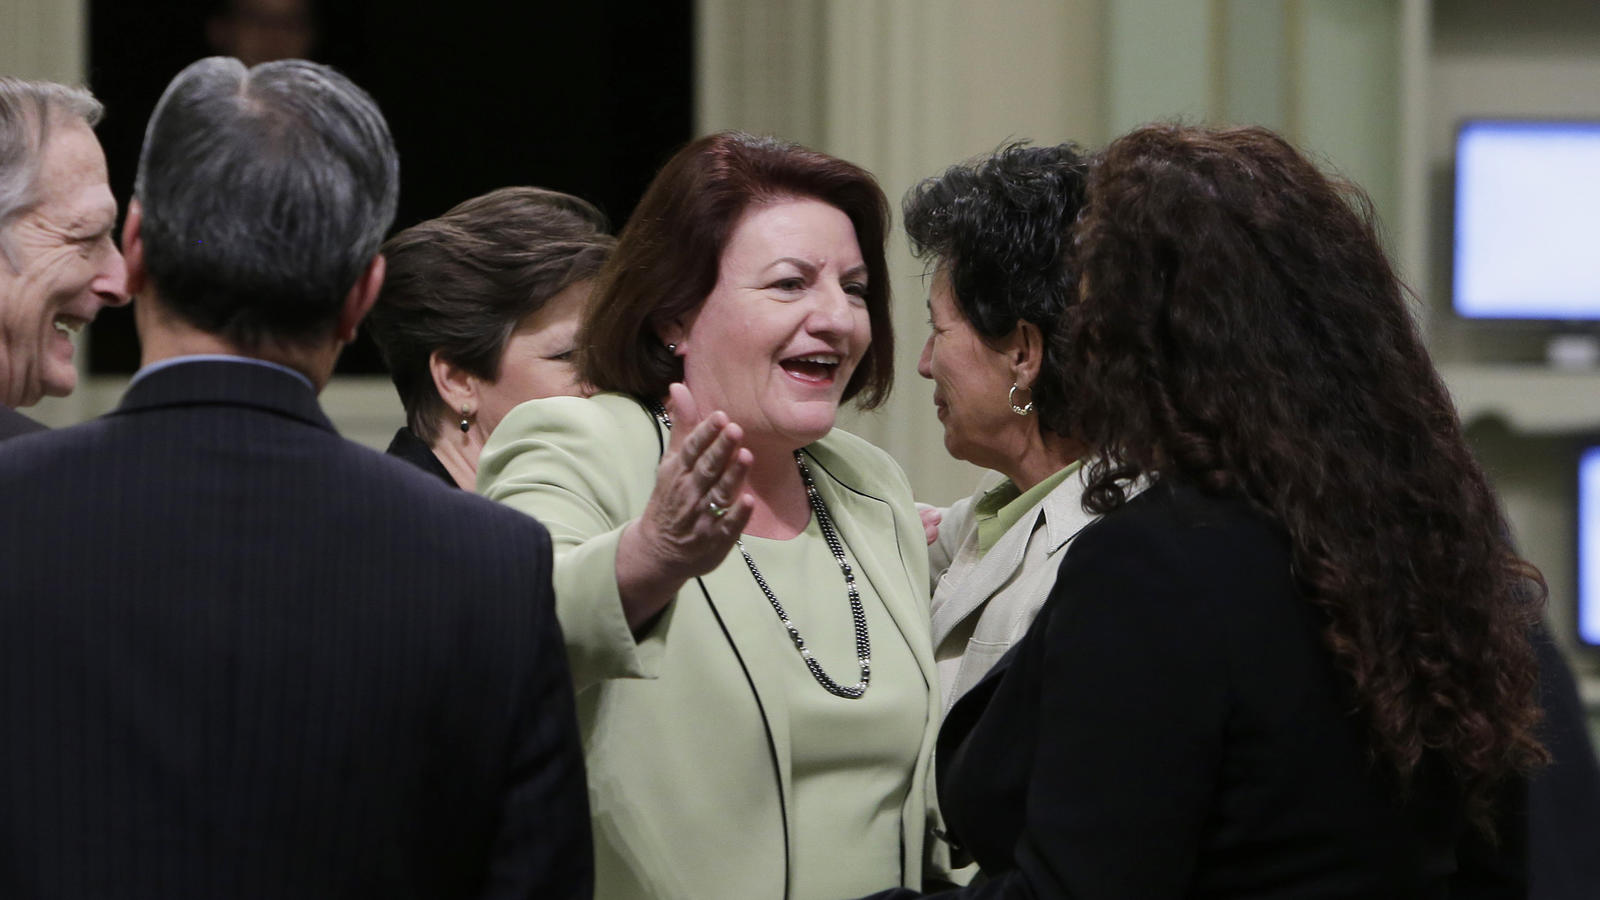 Senate Bill 2 from Sen. Toni Atkins (D-San Diego) would add a $75 fee to real estate transactions, such as mortgage refinances, to fund state housing subsidies. (Rich Pedroncelli / Associated Press)